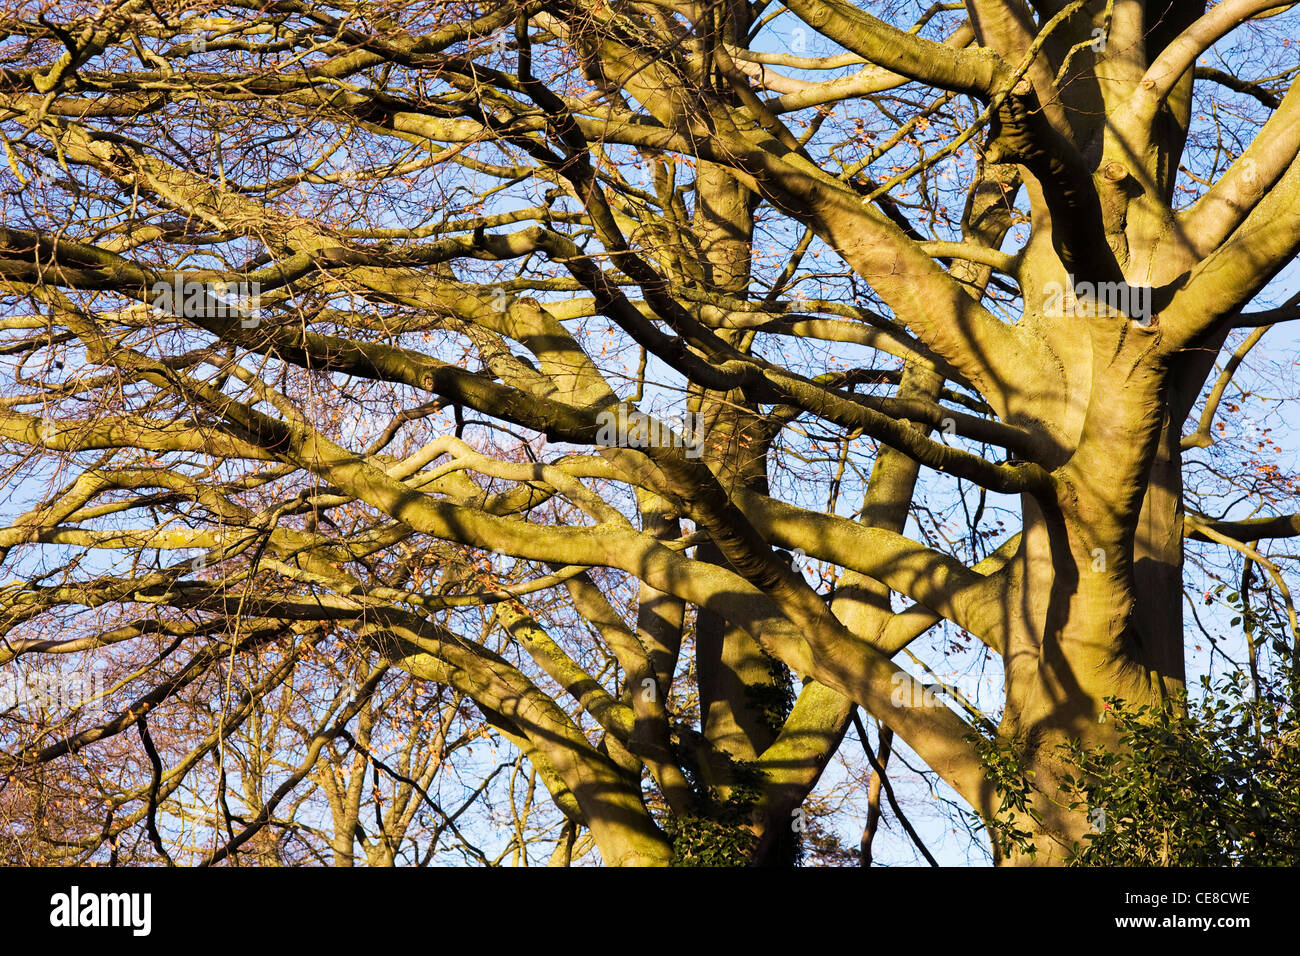 Fagus sylvatica in Winter. Winter sunlight on the branches of a Beech tree. - Stock Image